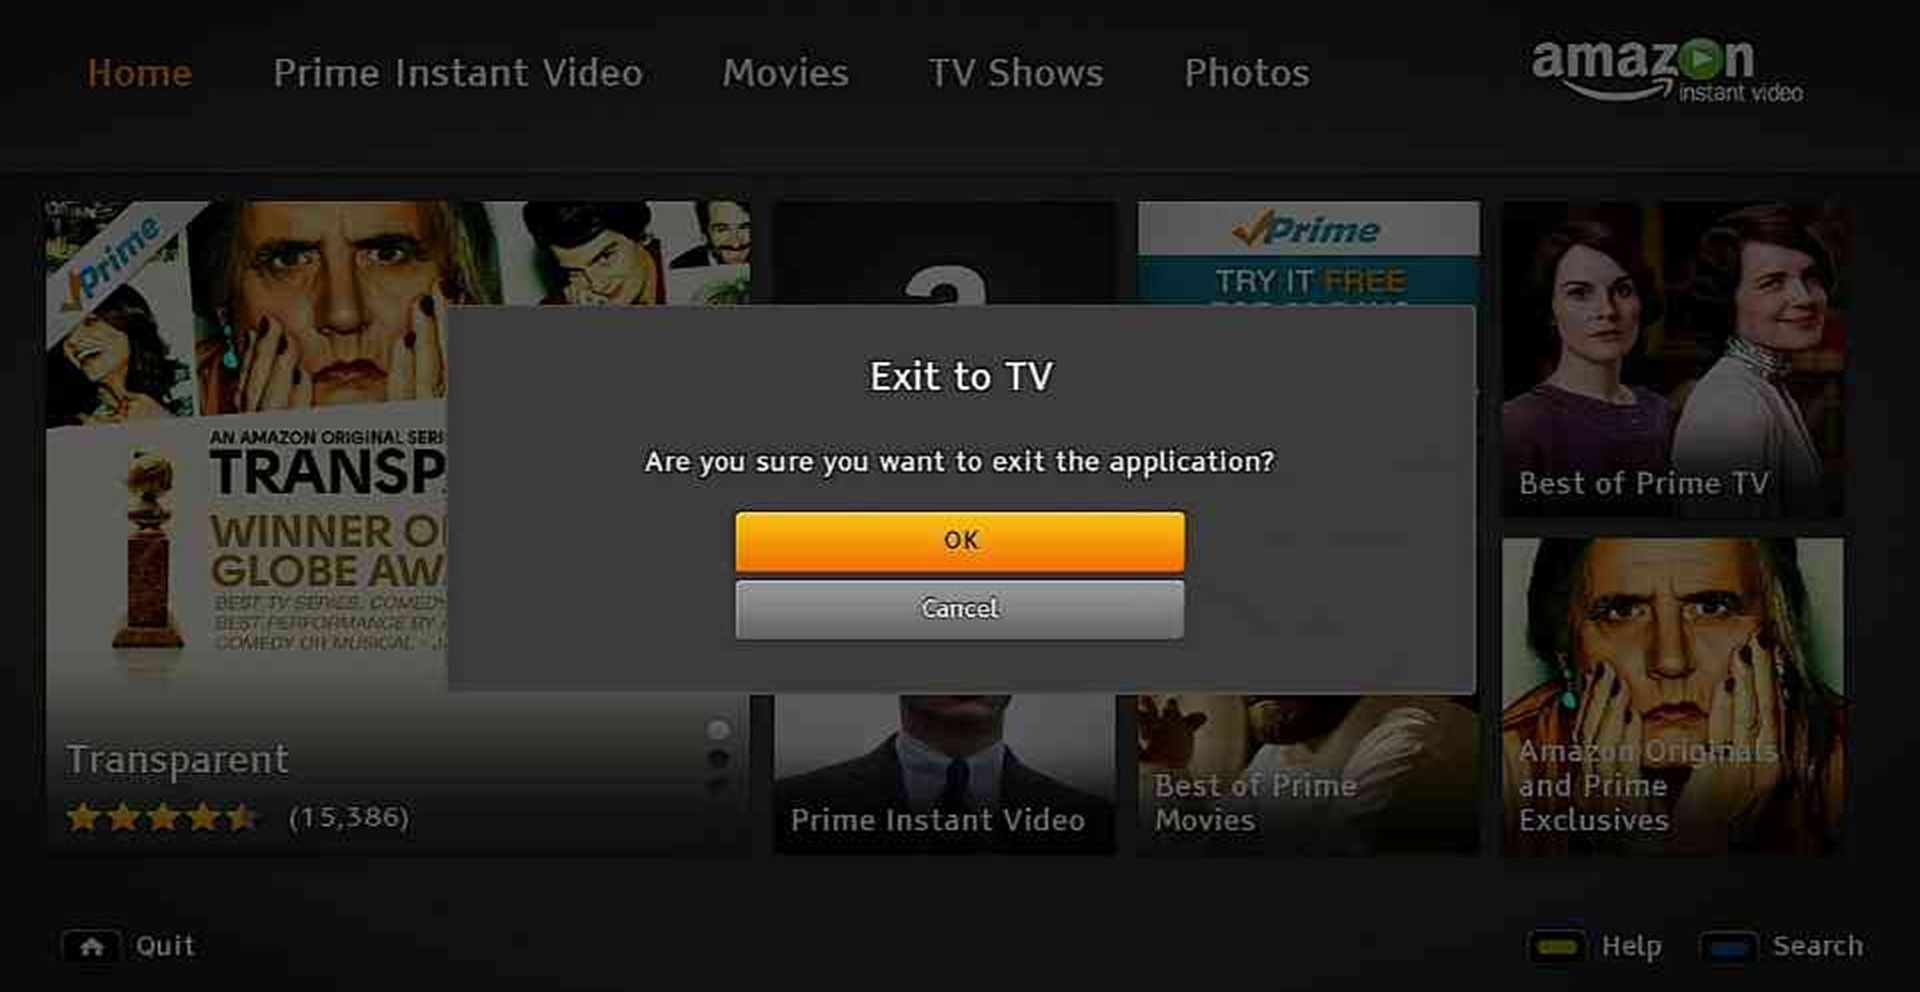 Amazon® instant video Troubleshooting - Blu-ray   LG USA Support